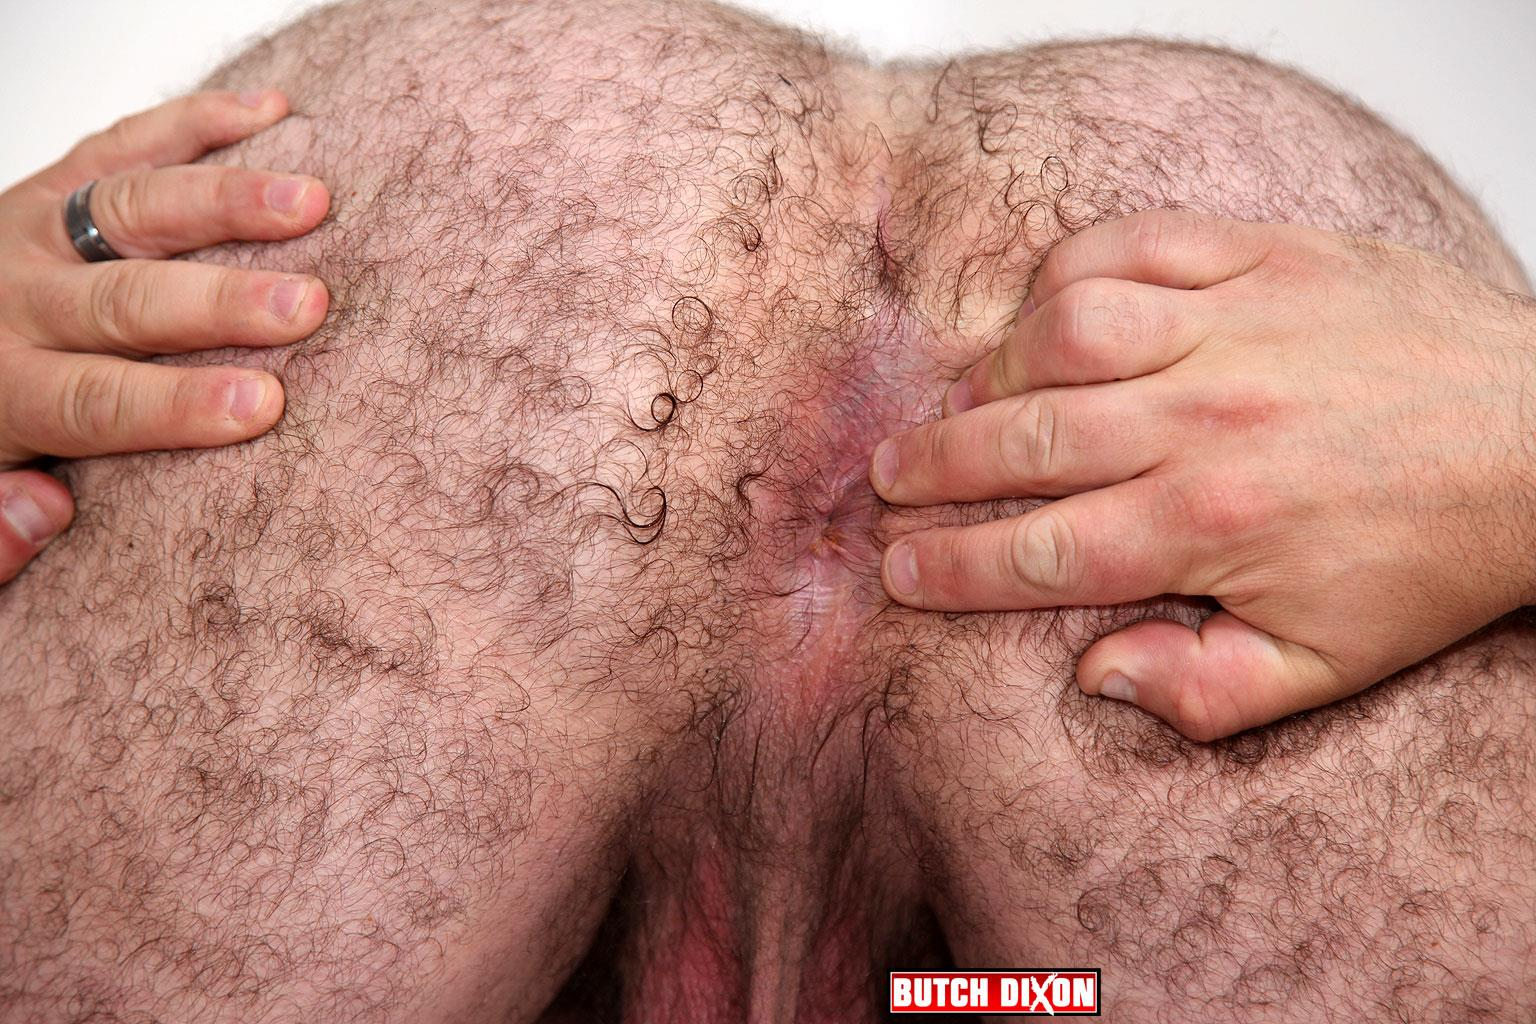 Butch-Dixon-Tommo-Hawk-Chubby-Hairy-Guy-Playing-With-Big-Uncut-Cock-Amateur-Gay-Porn-05 Hairy Chubby Bear Plays With His Thick Uncut Cock And Big Hairy Ass